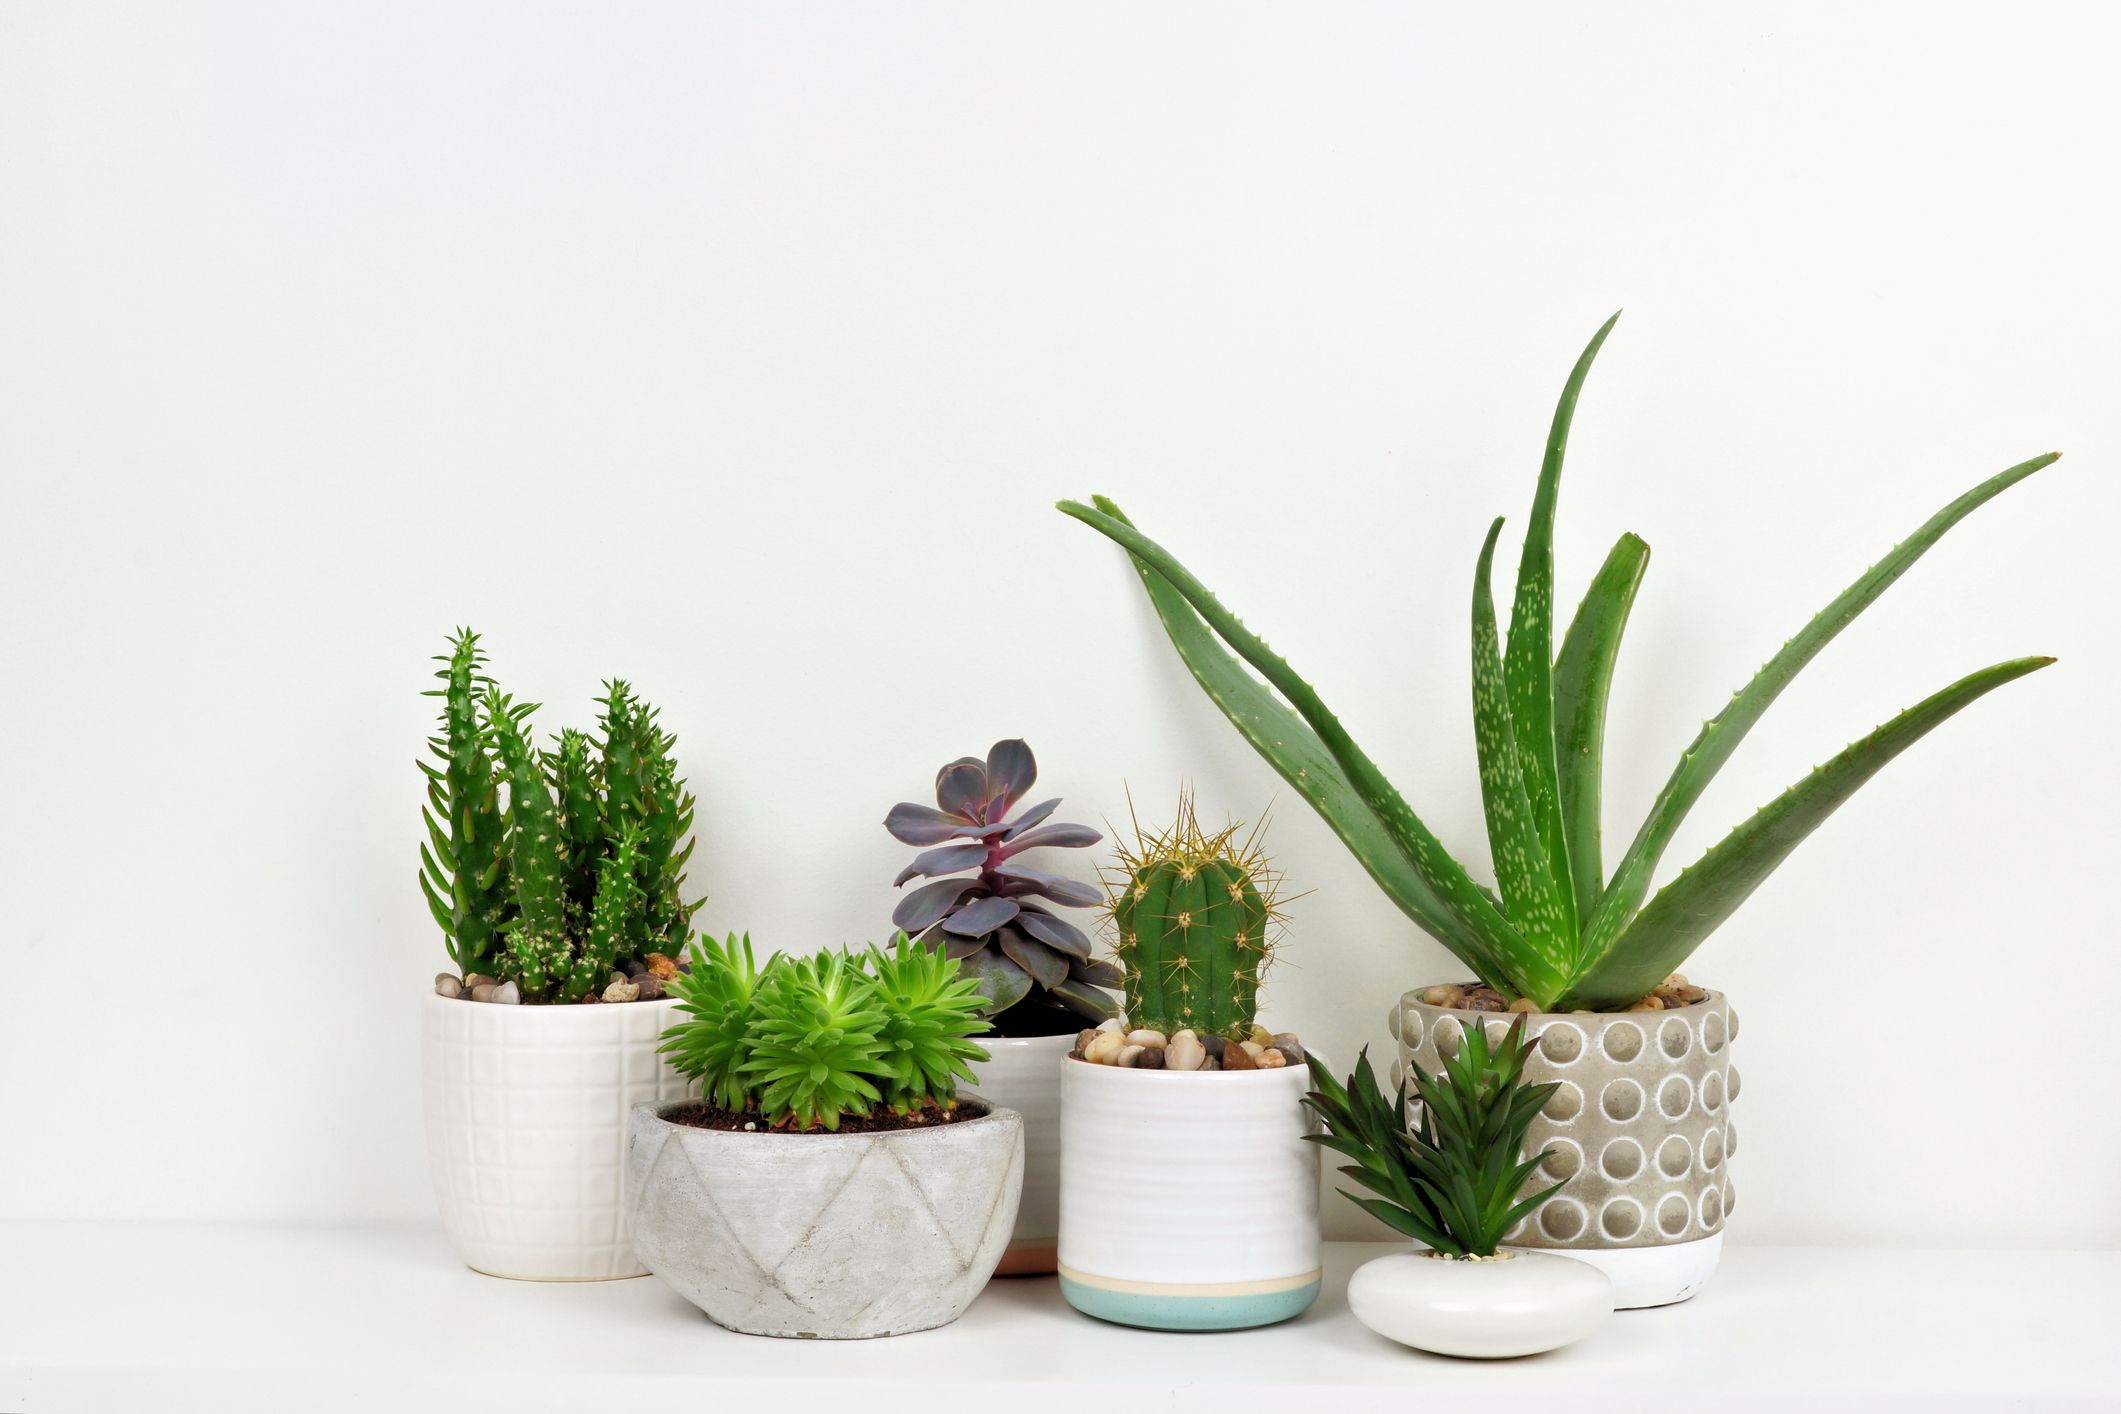 Sansevieria Plant Feng Shui best indoor office plants for working at home